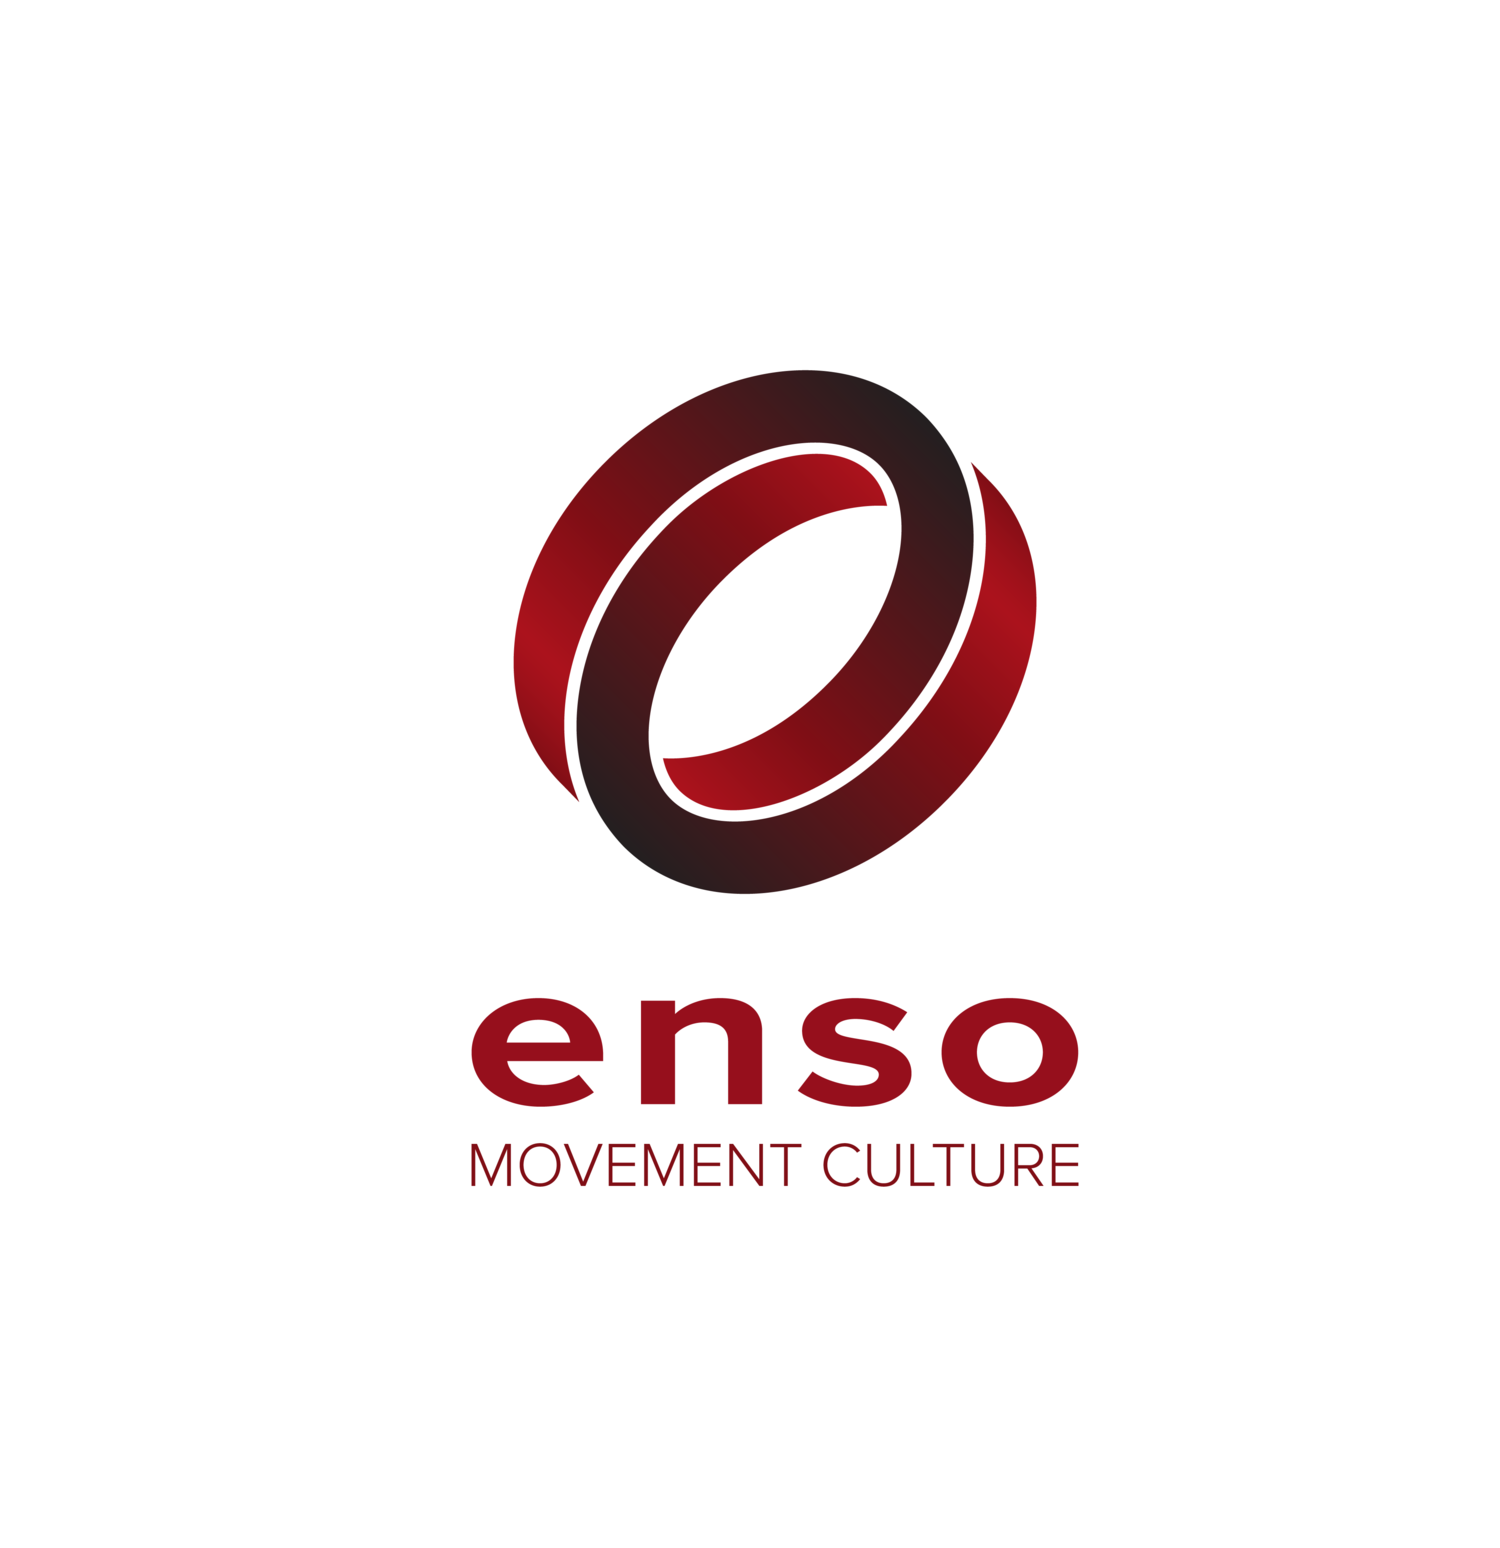 Enso Movement Culture